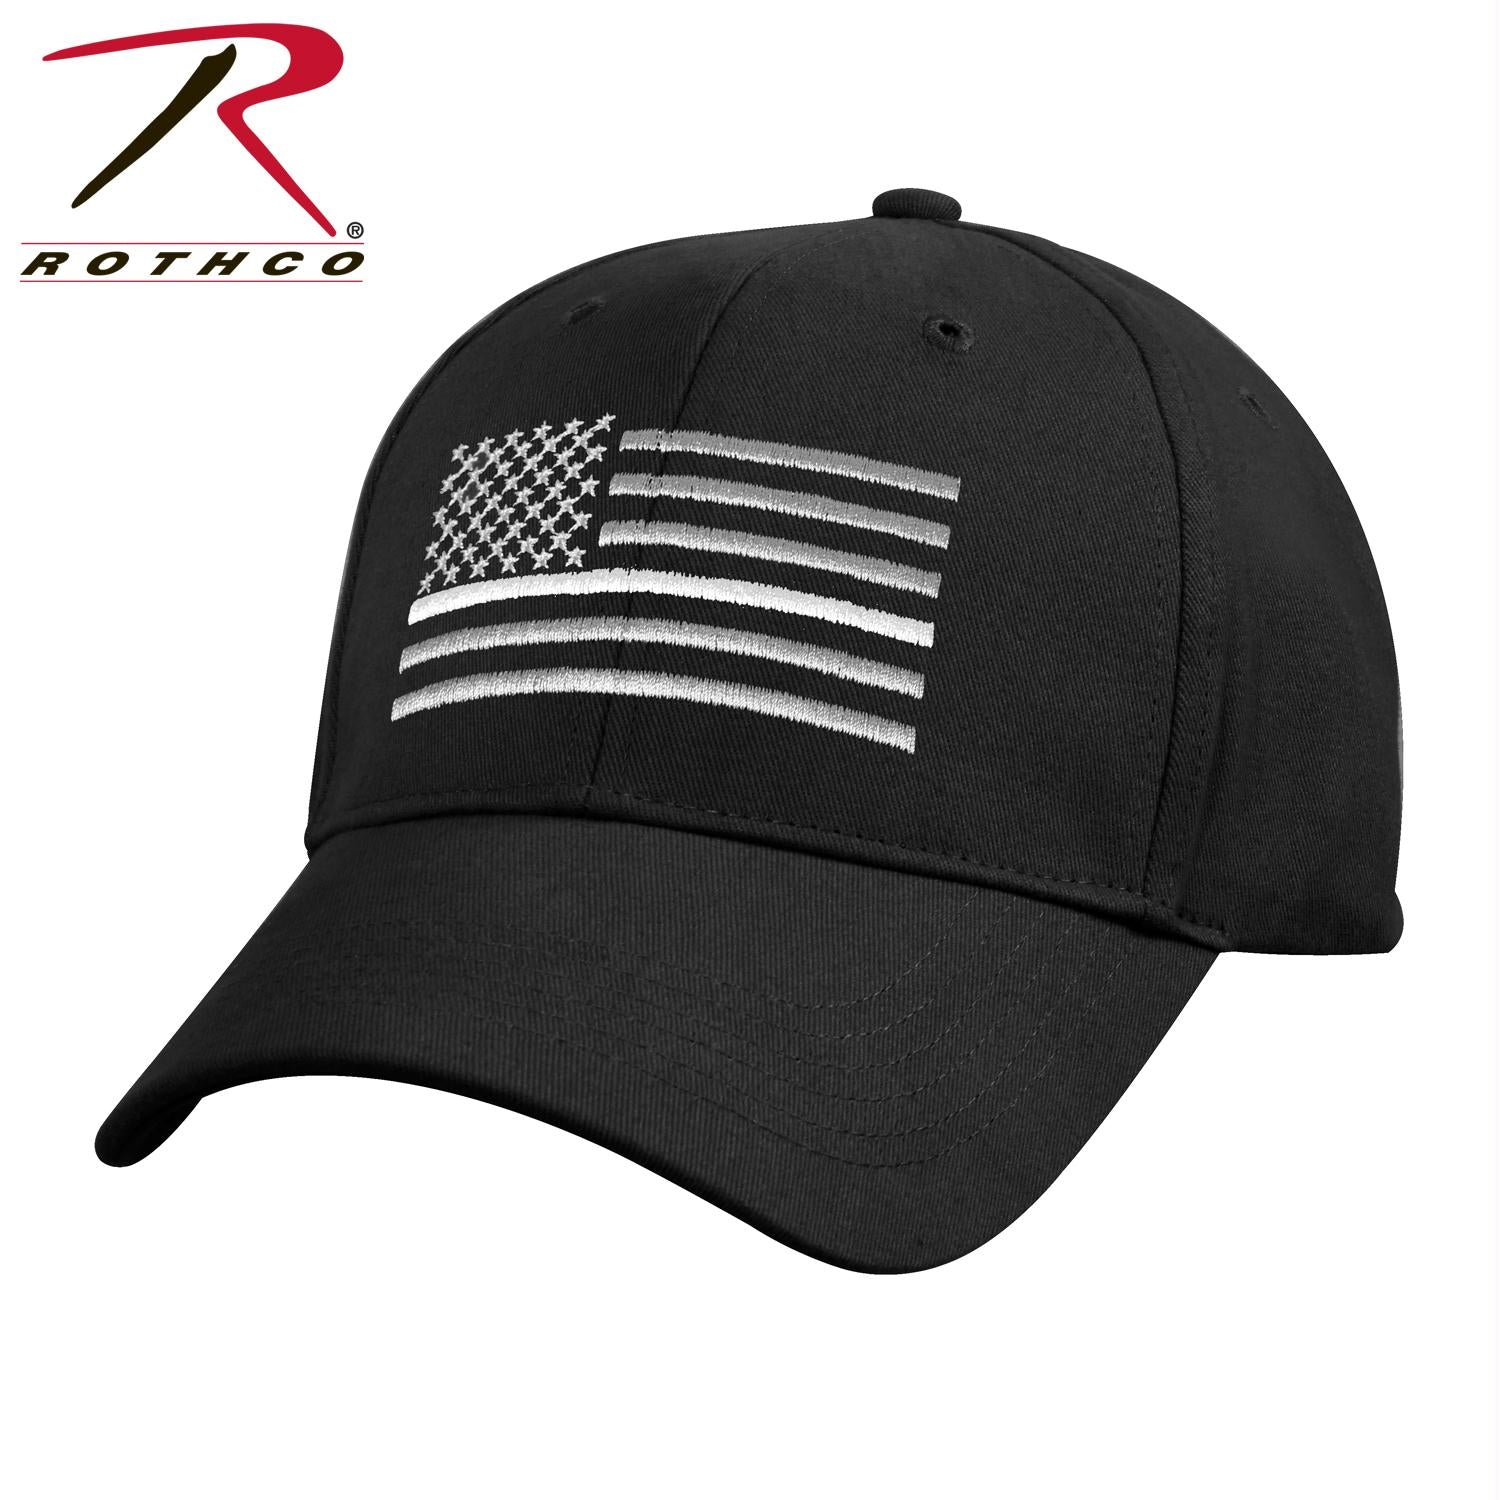 Rothco Thin White Line Flag Low Pro Cap - Black / One Size